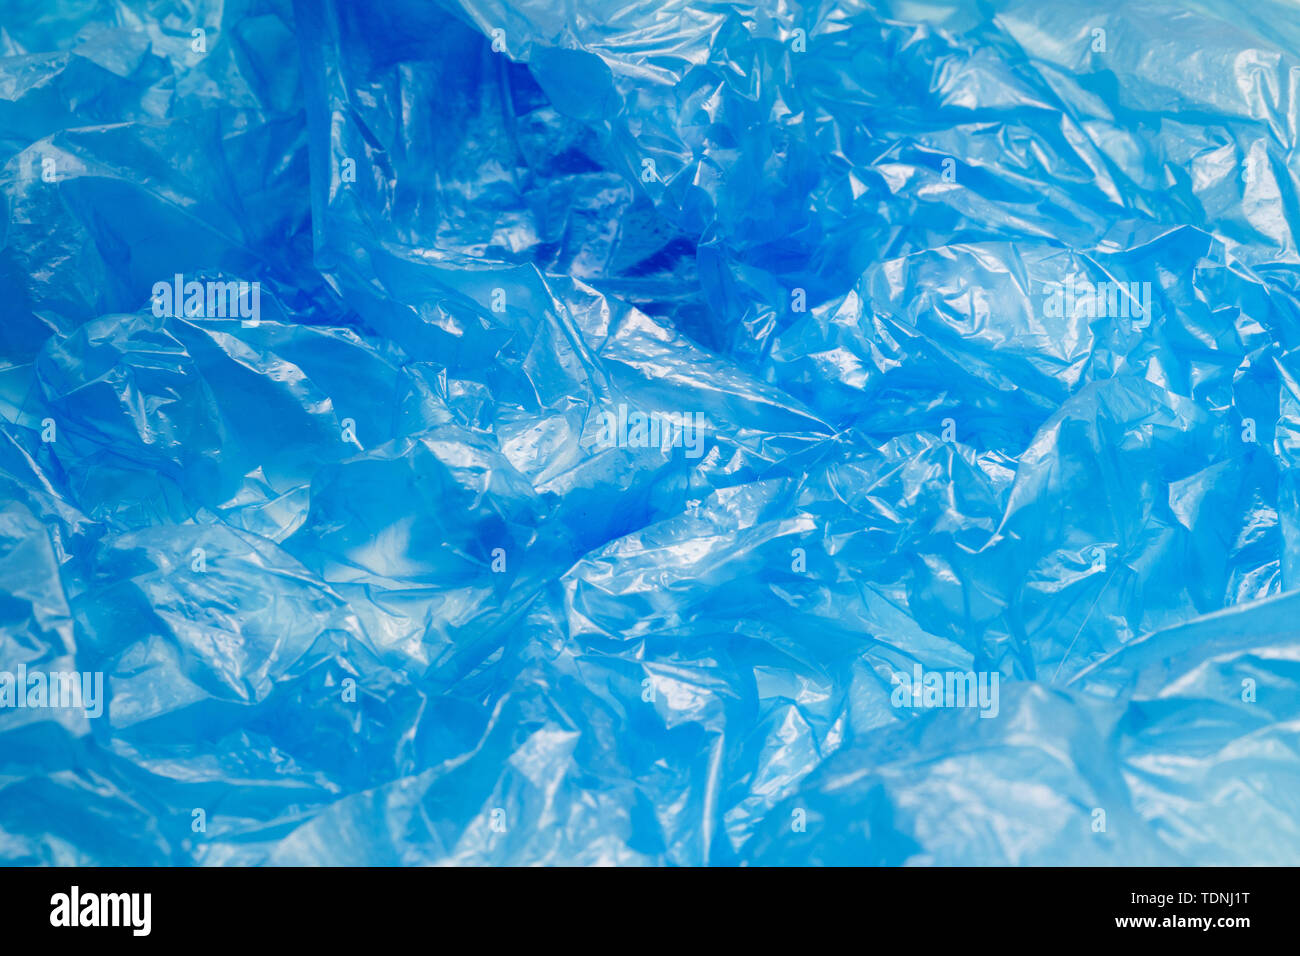 Blue Plastic Bag Texture. Abstract Wrinkled Background of Plastic Garbage - Stock Image